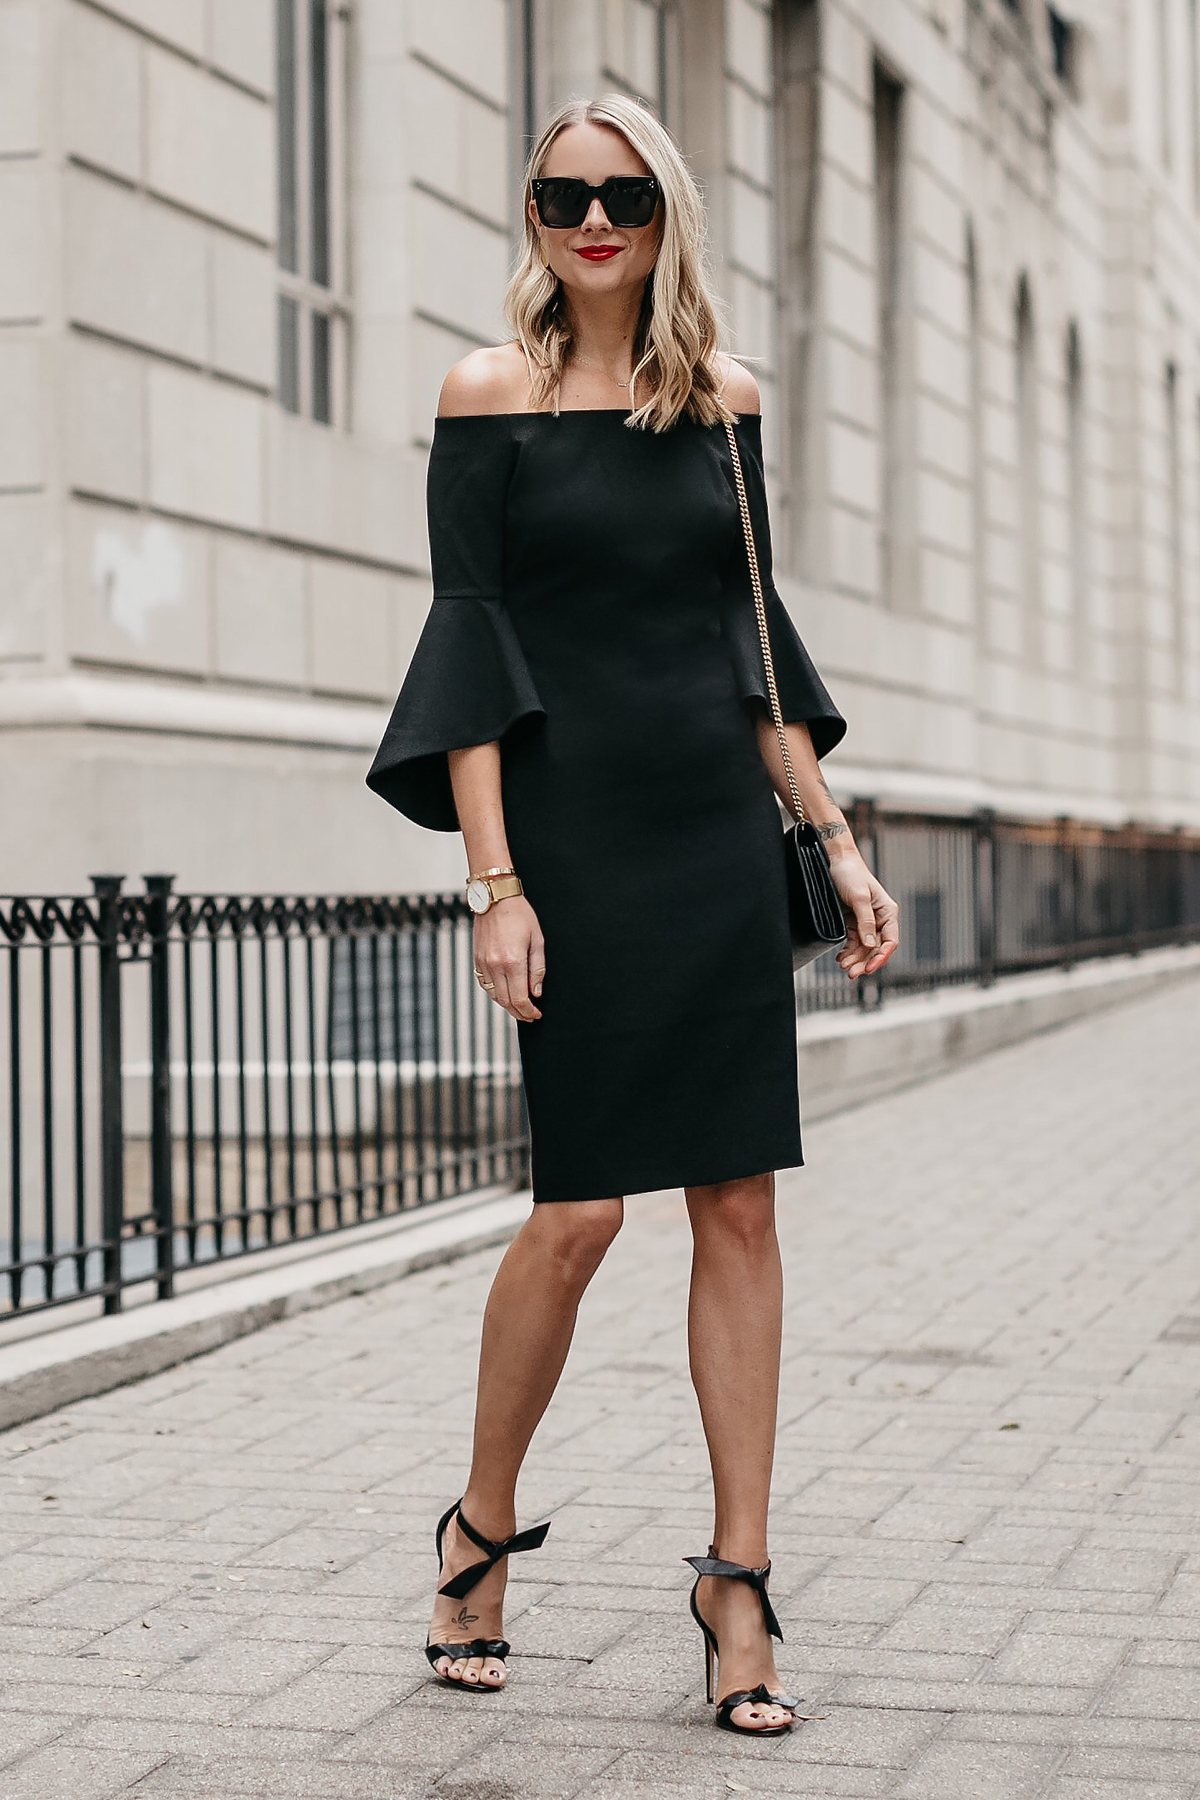 Blonde Woman Wearing Off-the-Shoulder Black Holiday Dress Alexandre Birman Clarita Ankle Tie Black Heels Fashion Jackson Dallas Blogger Fashion Blogger Street Style